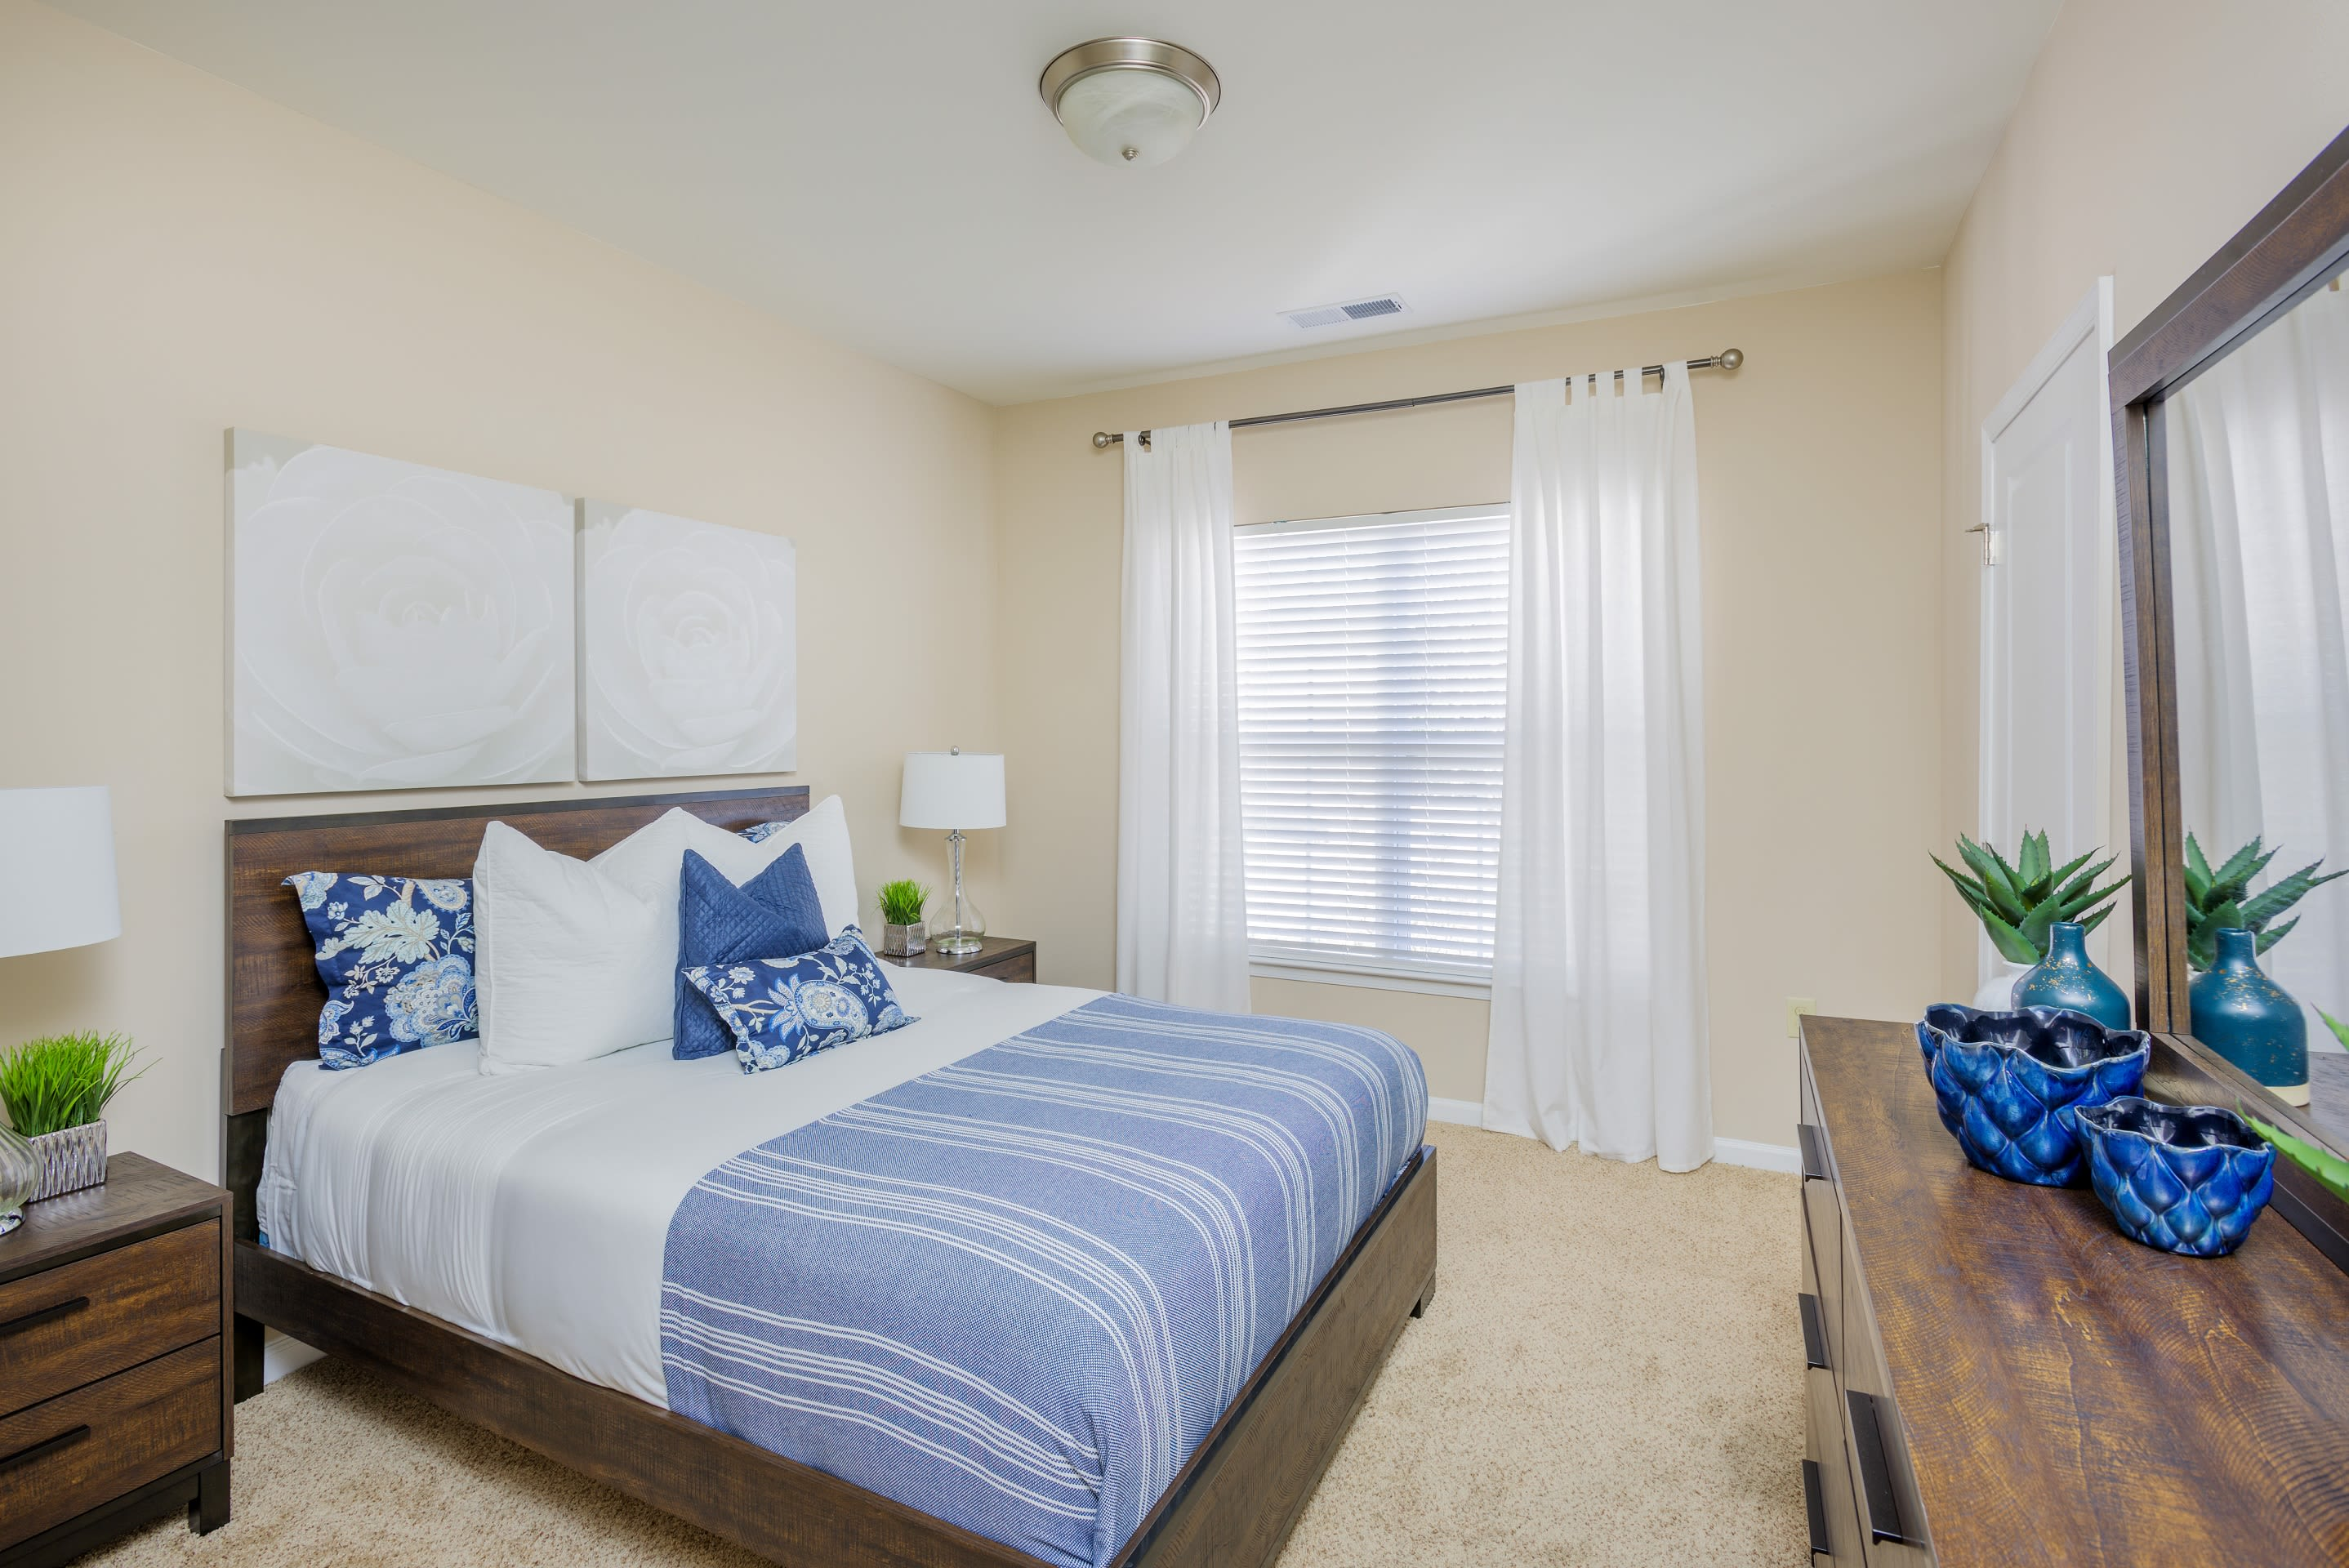 Arbor Village offers a modern bedroom in Summerville, South Carolina